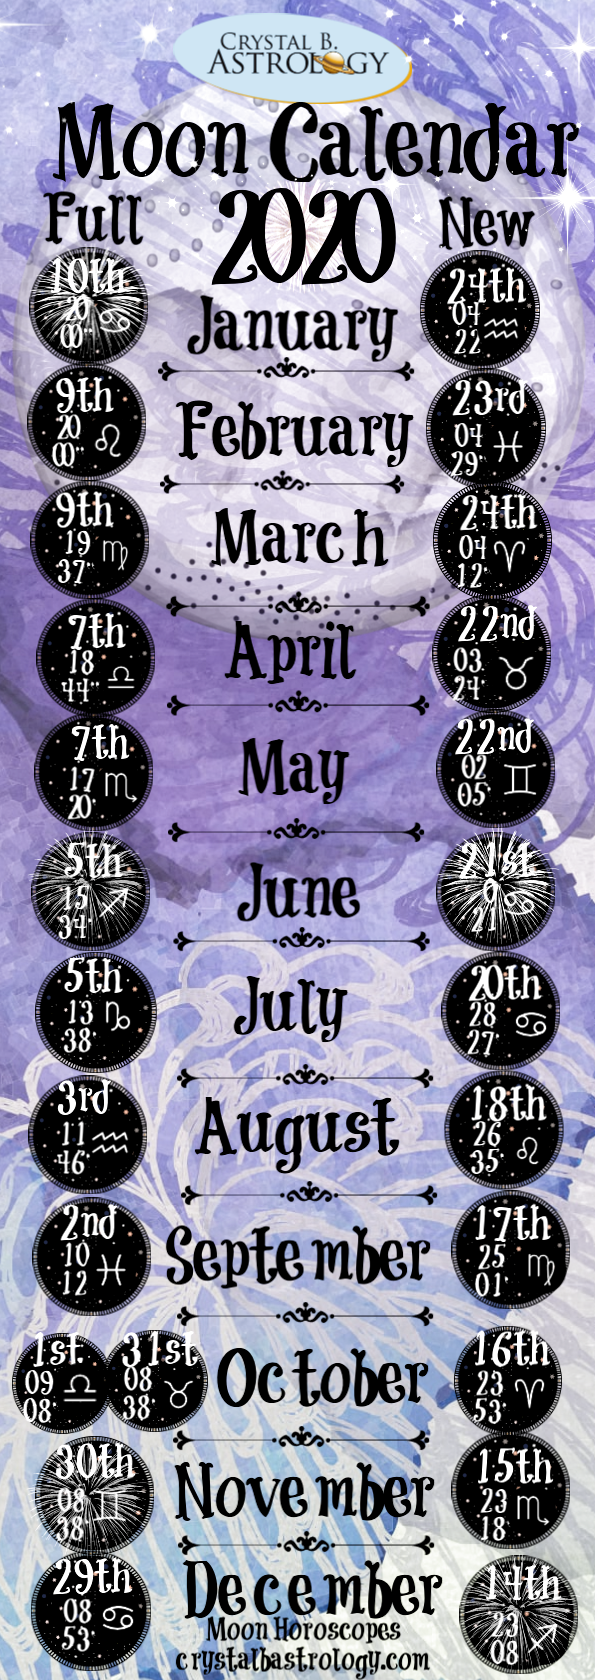 Mark a date of every Full Moon and New Moon in 2020 on your calendar. #calendar #moon #full #year #horoscope #astrology